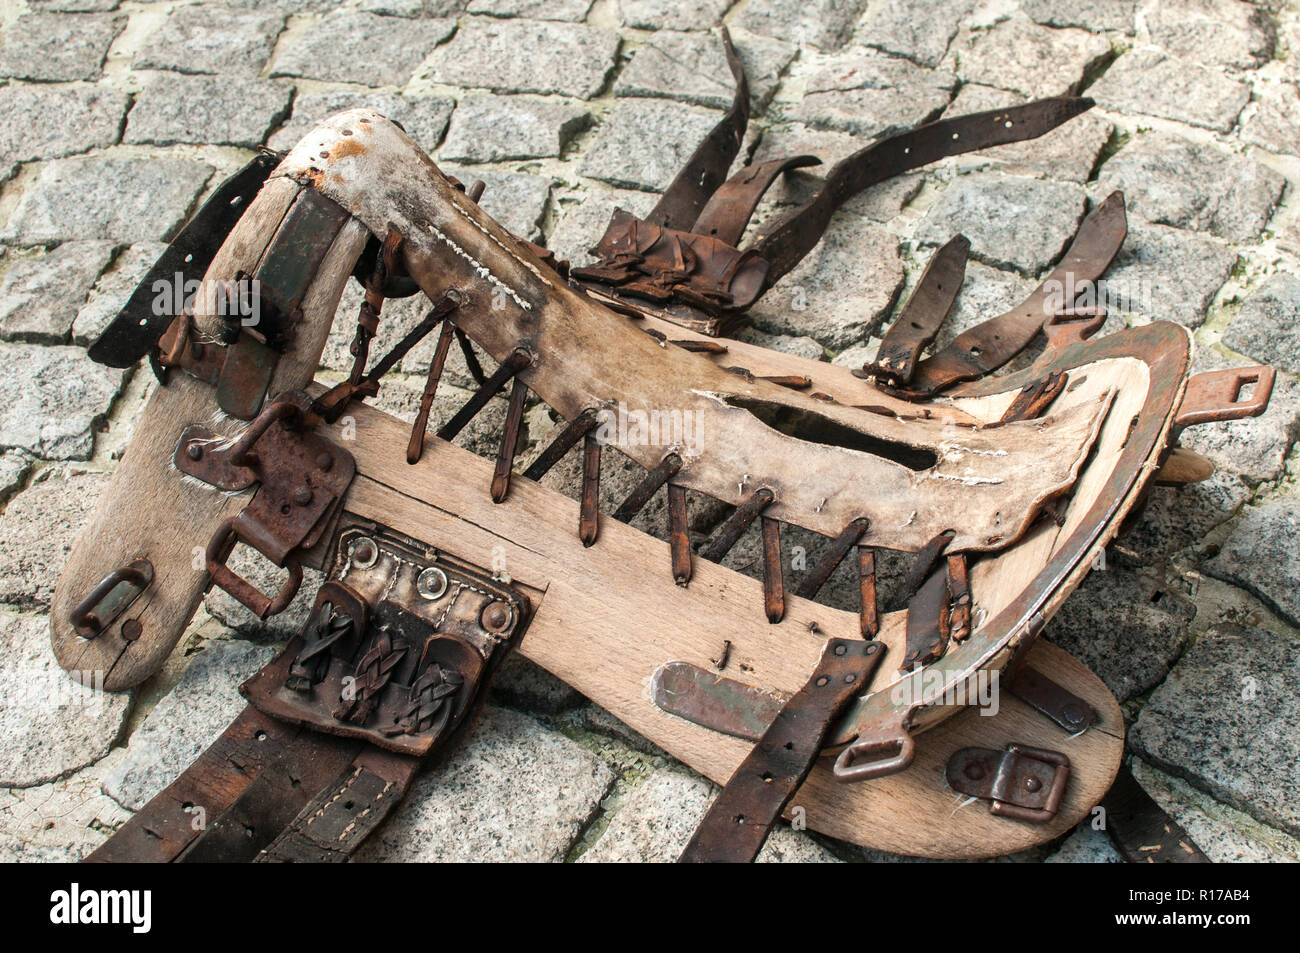 Old vintage horse saddle leather and wooden base frame tree closeup on stone paved ground surface - Stock Image